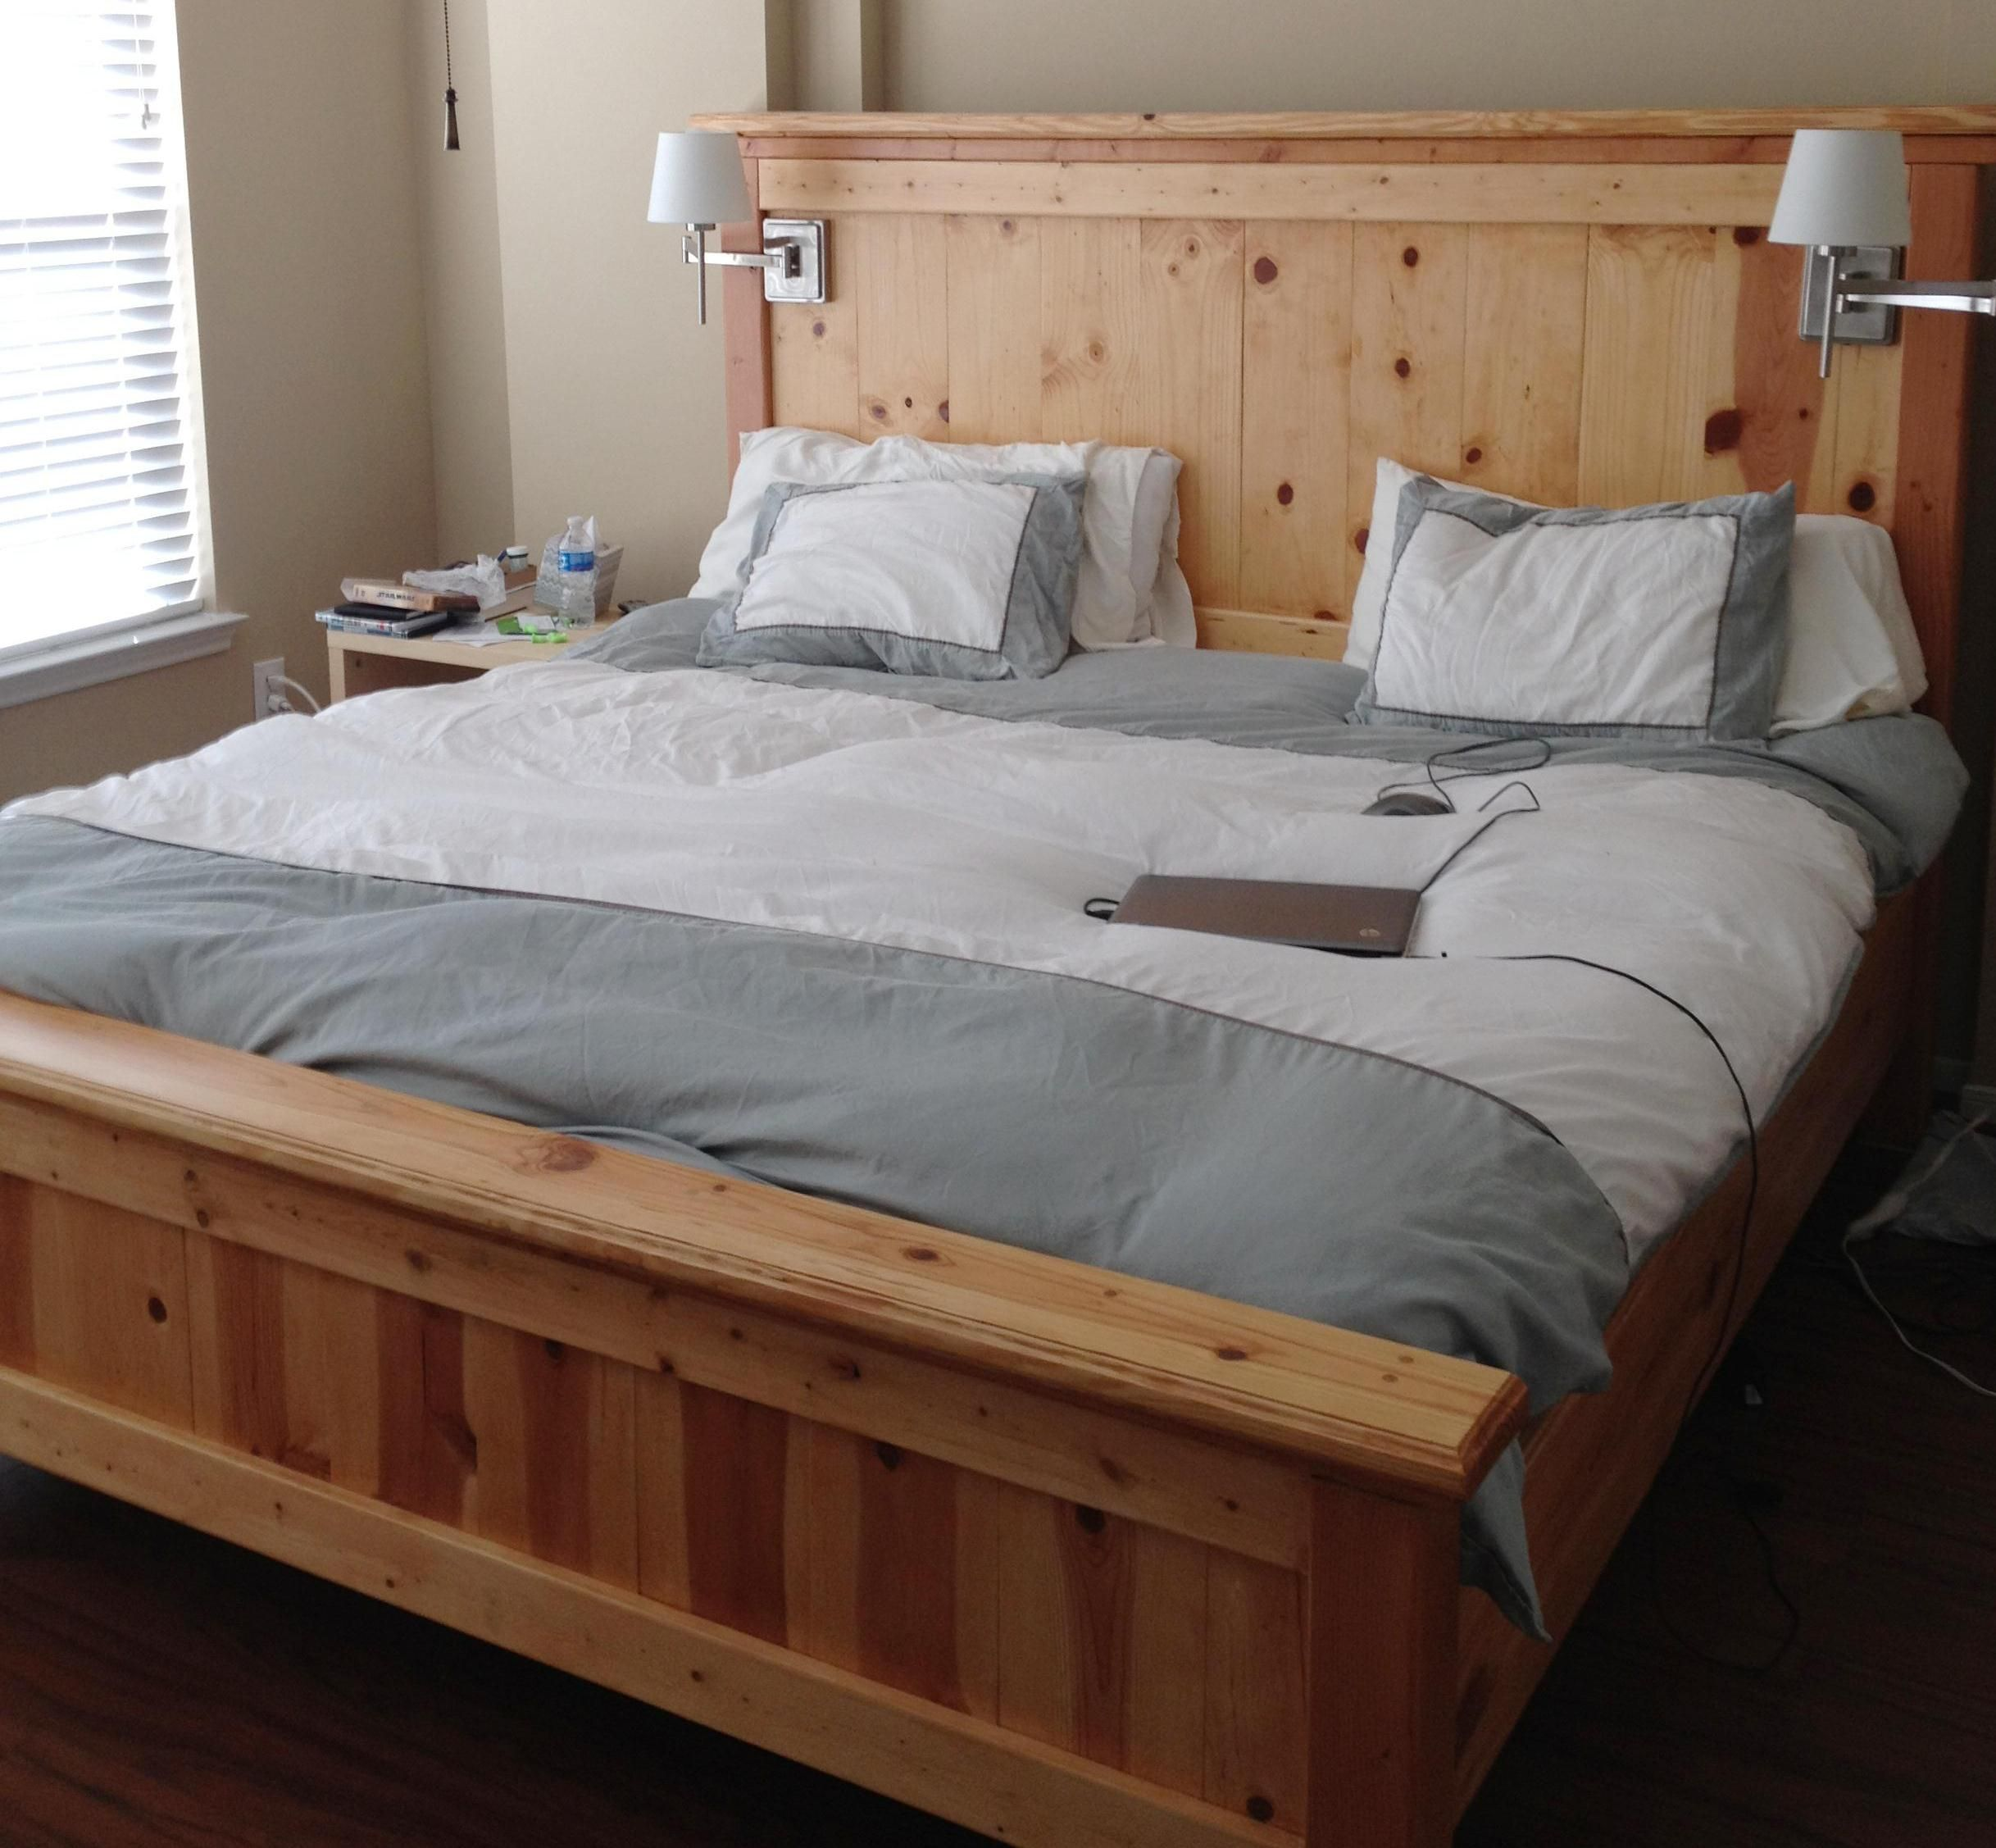 king size wood headboard bed frame blueprints free farmhouse king do it yourself home projects from ana white american woodworker build pinterest bedroom and